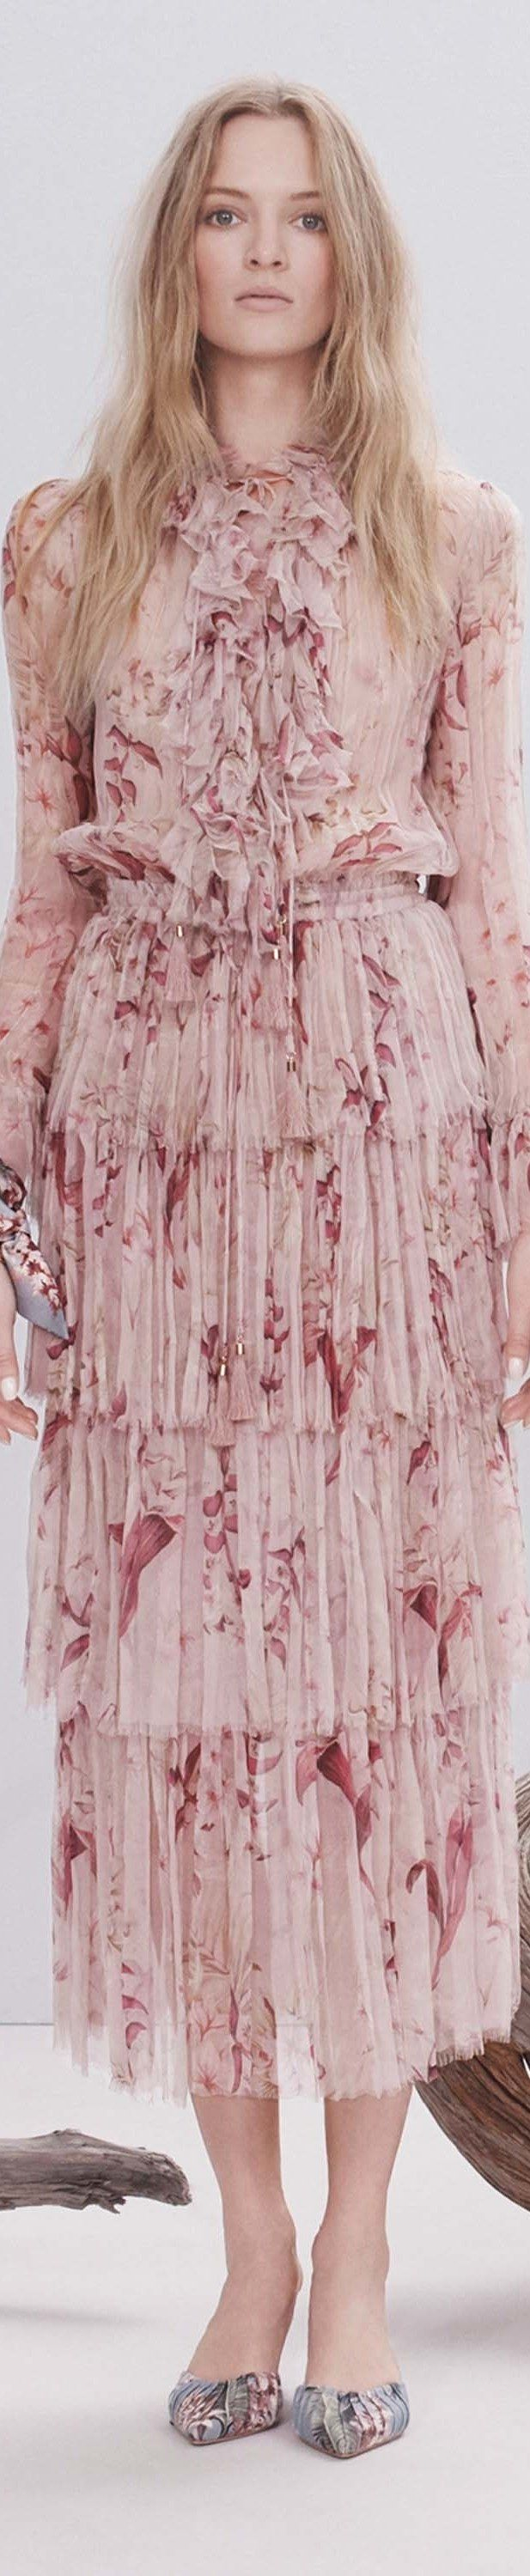 Zimmermann - RESORT 2017